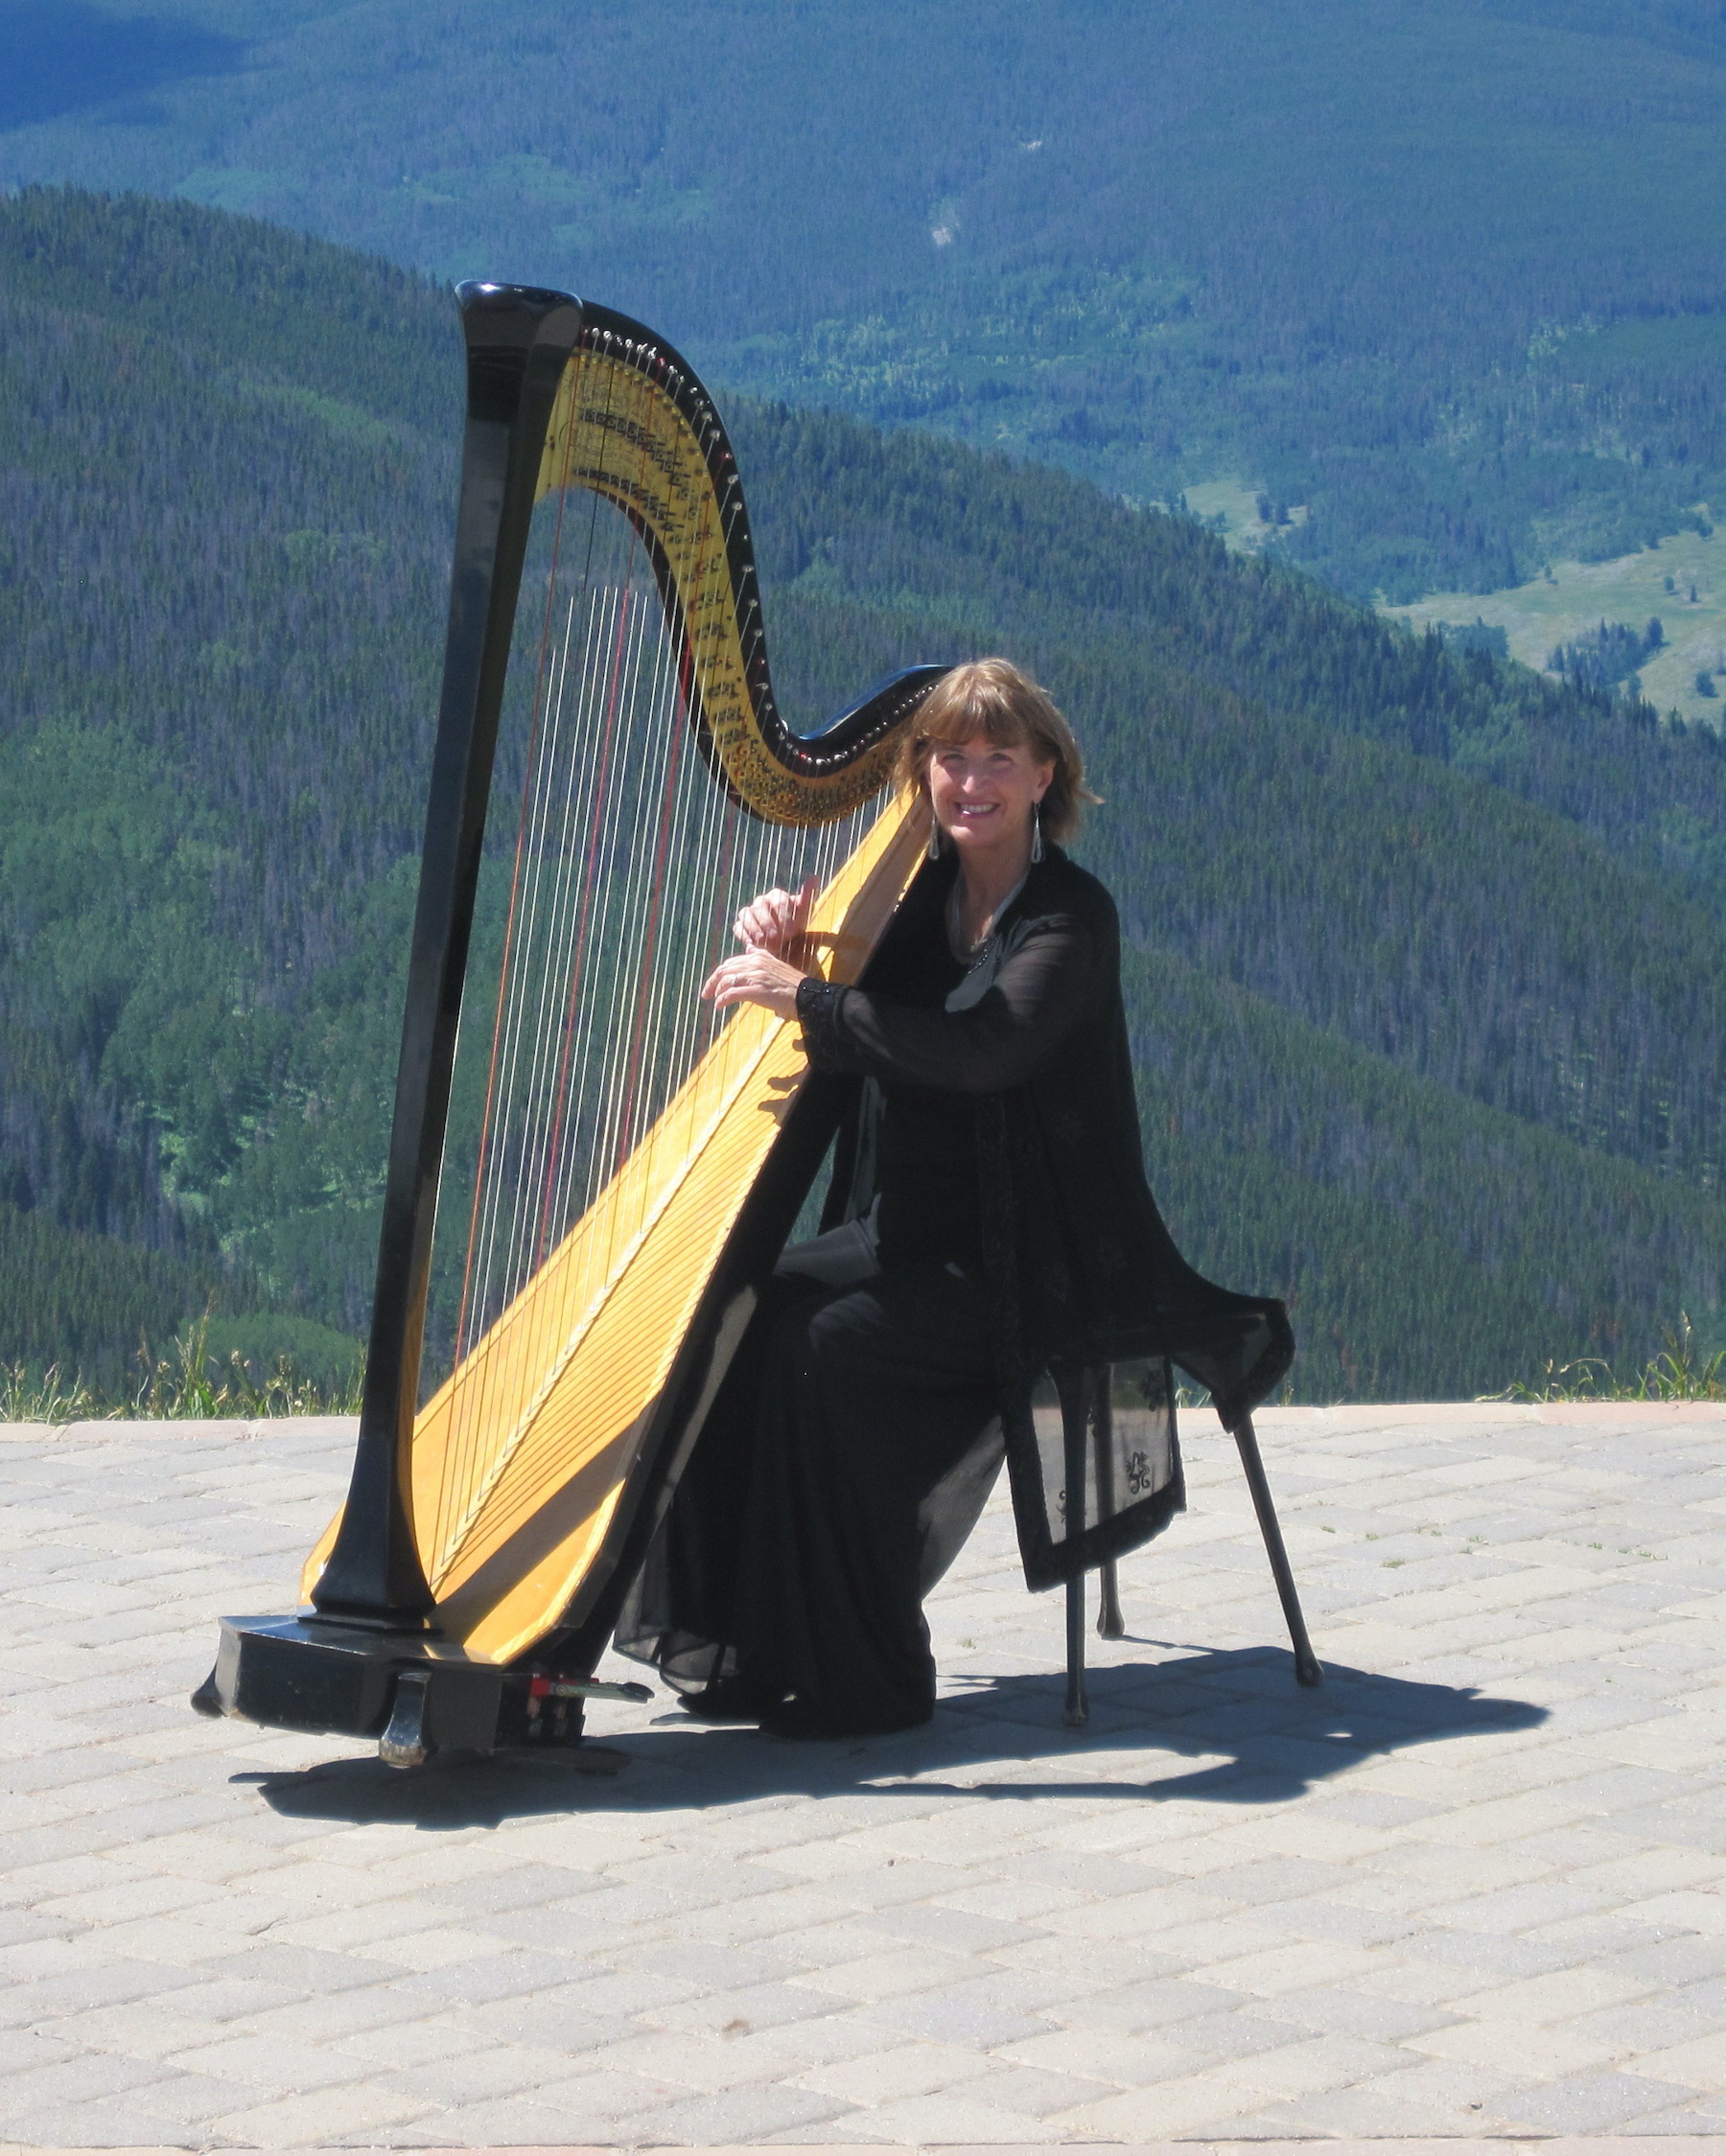 Barbara playing harp wedding music in Vail, Colorado.